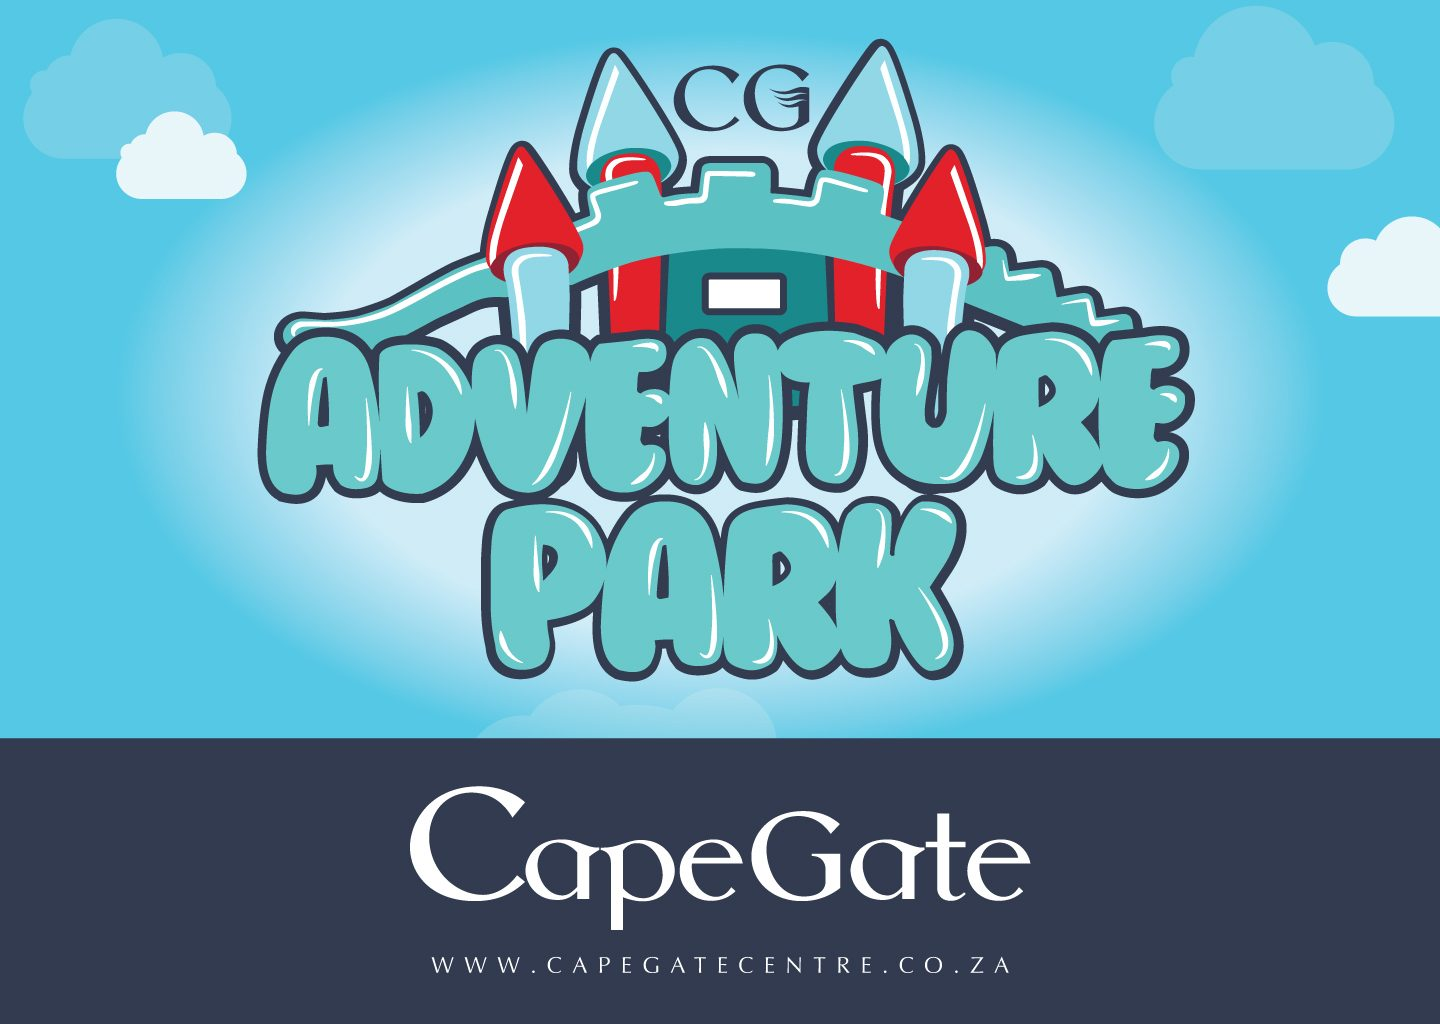 WIN 4 x Tickets for the Capegate Adventure Park this Winter